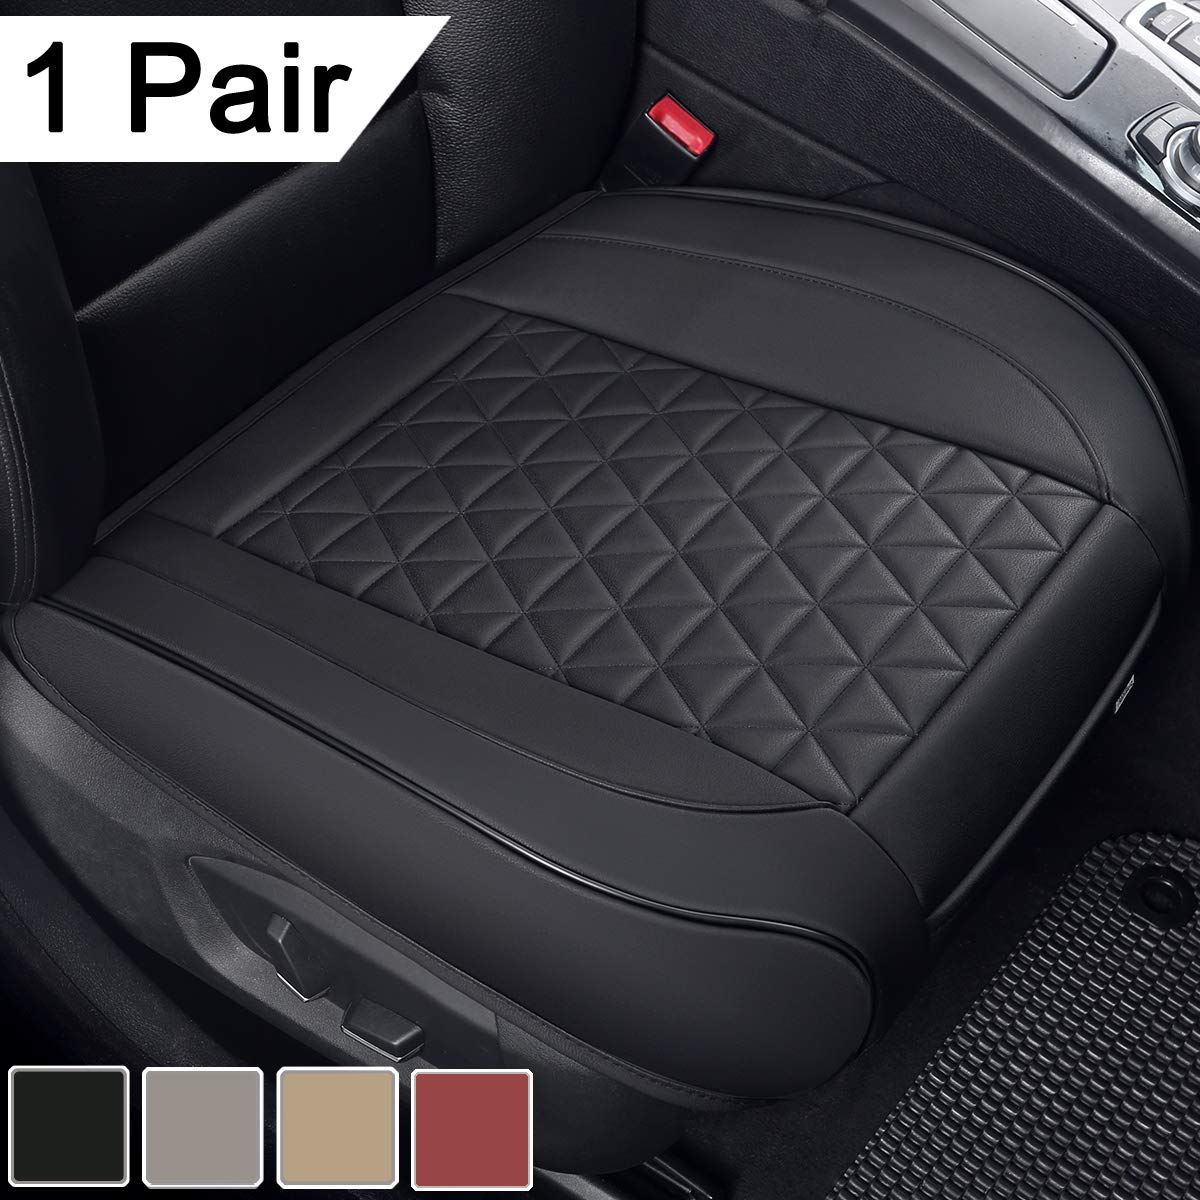 Black Panther 1 Pair Luxury PU Leather Car Seat Covers Cushions Front Seat Bottoms Protectors,Compatible with 90% Vehicles (Sedan SUV Truck Van MPV) - Black,Triangle Pattern (21.26�20.86 Inches)